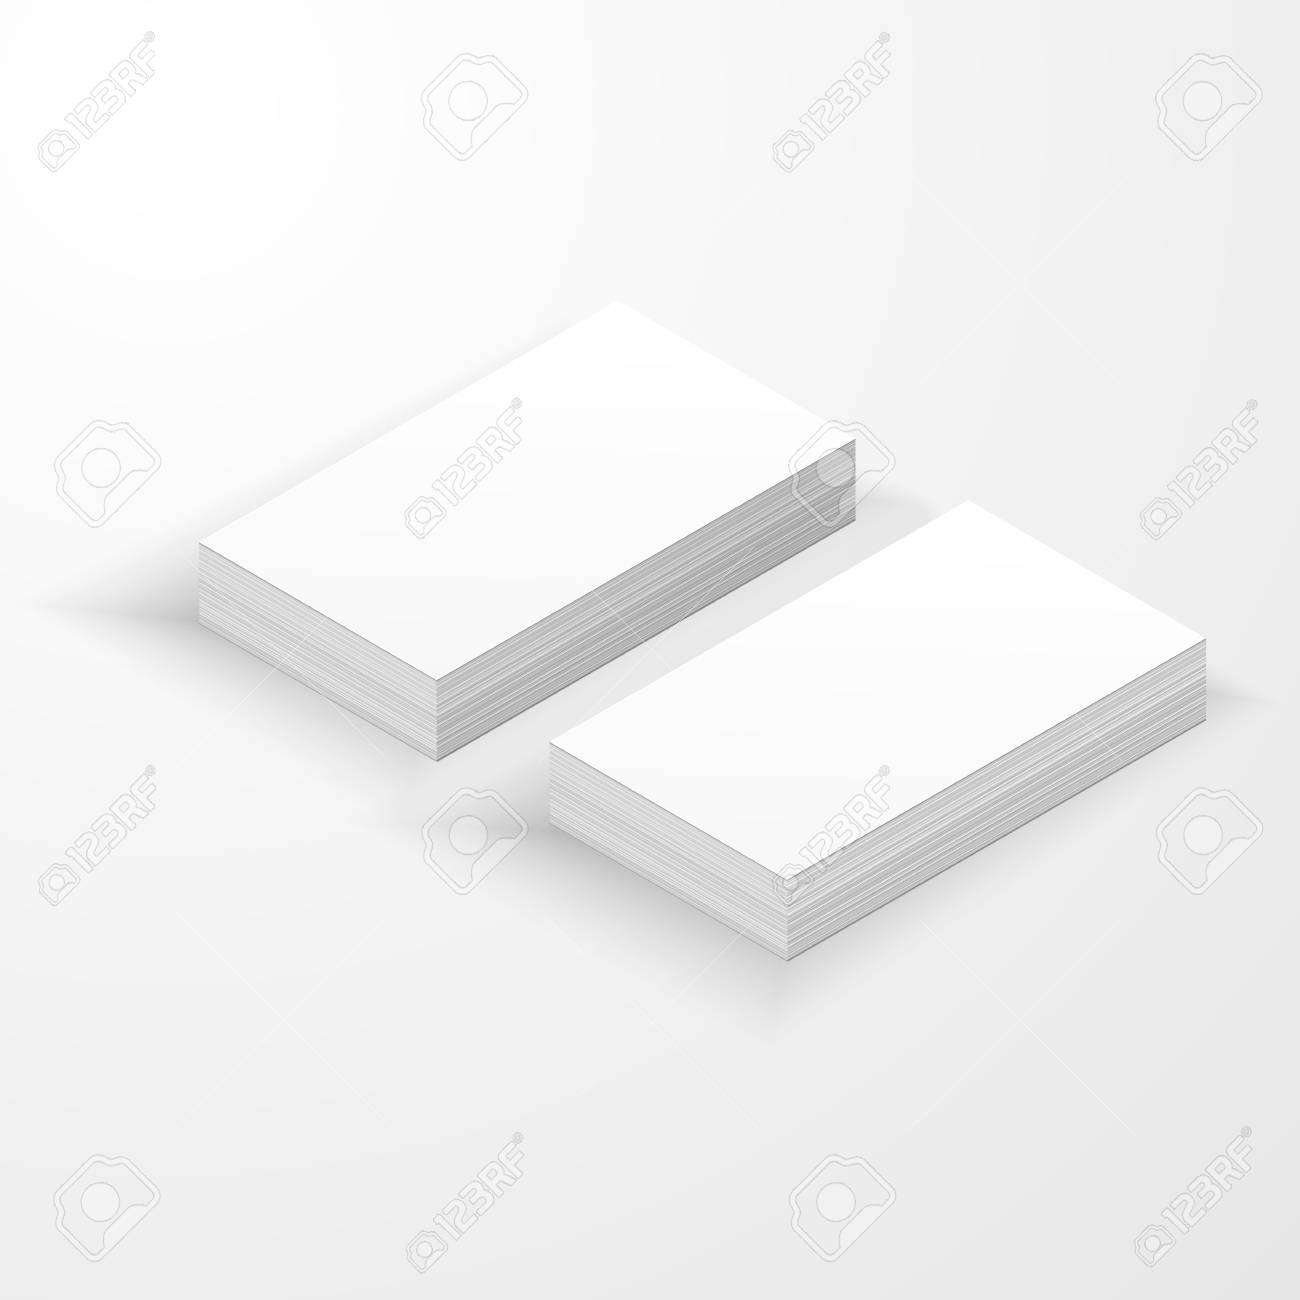 Blank business card mockup template created by vector royalty free blank business card mockup template created by vector stock vector 102049405 friedricerecipe Gallery